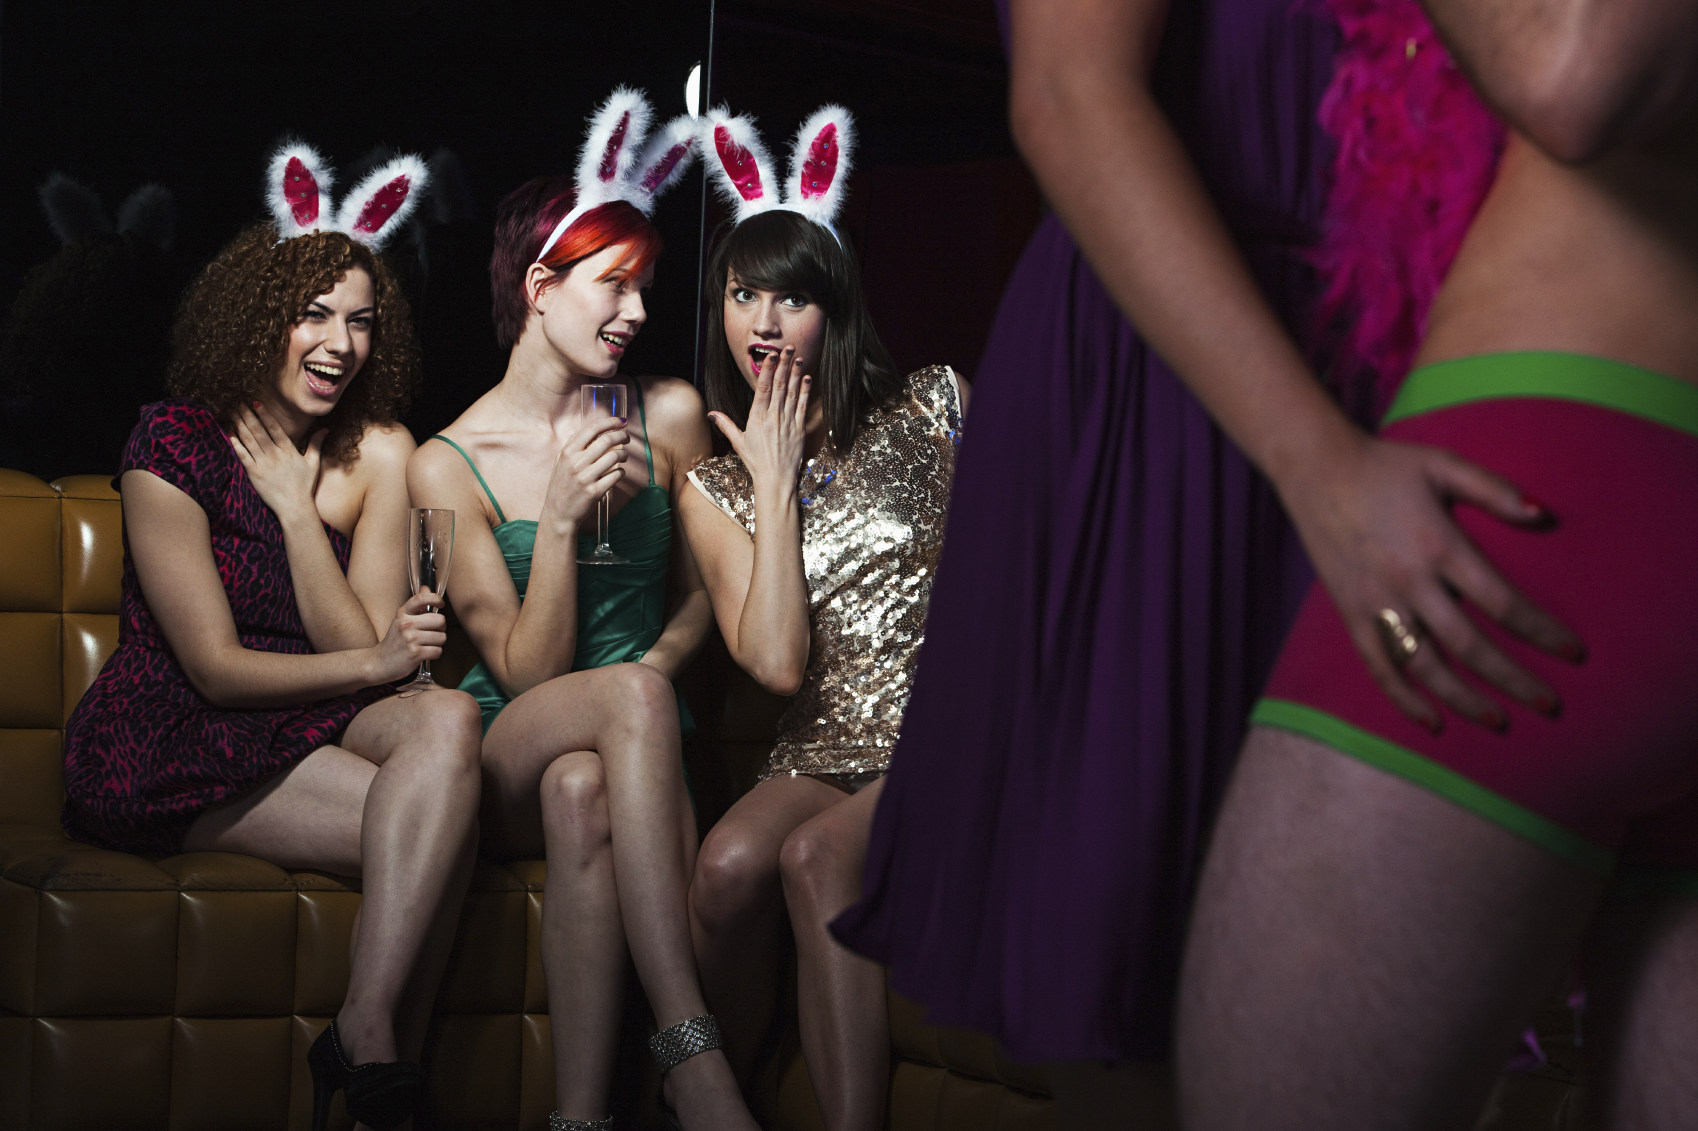 How far is too far at your hen's or buck's night?